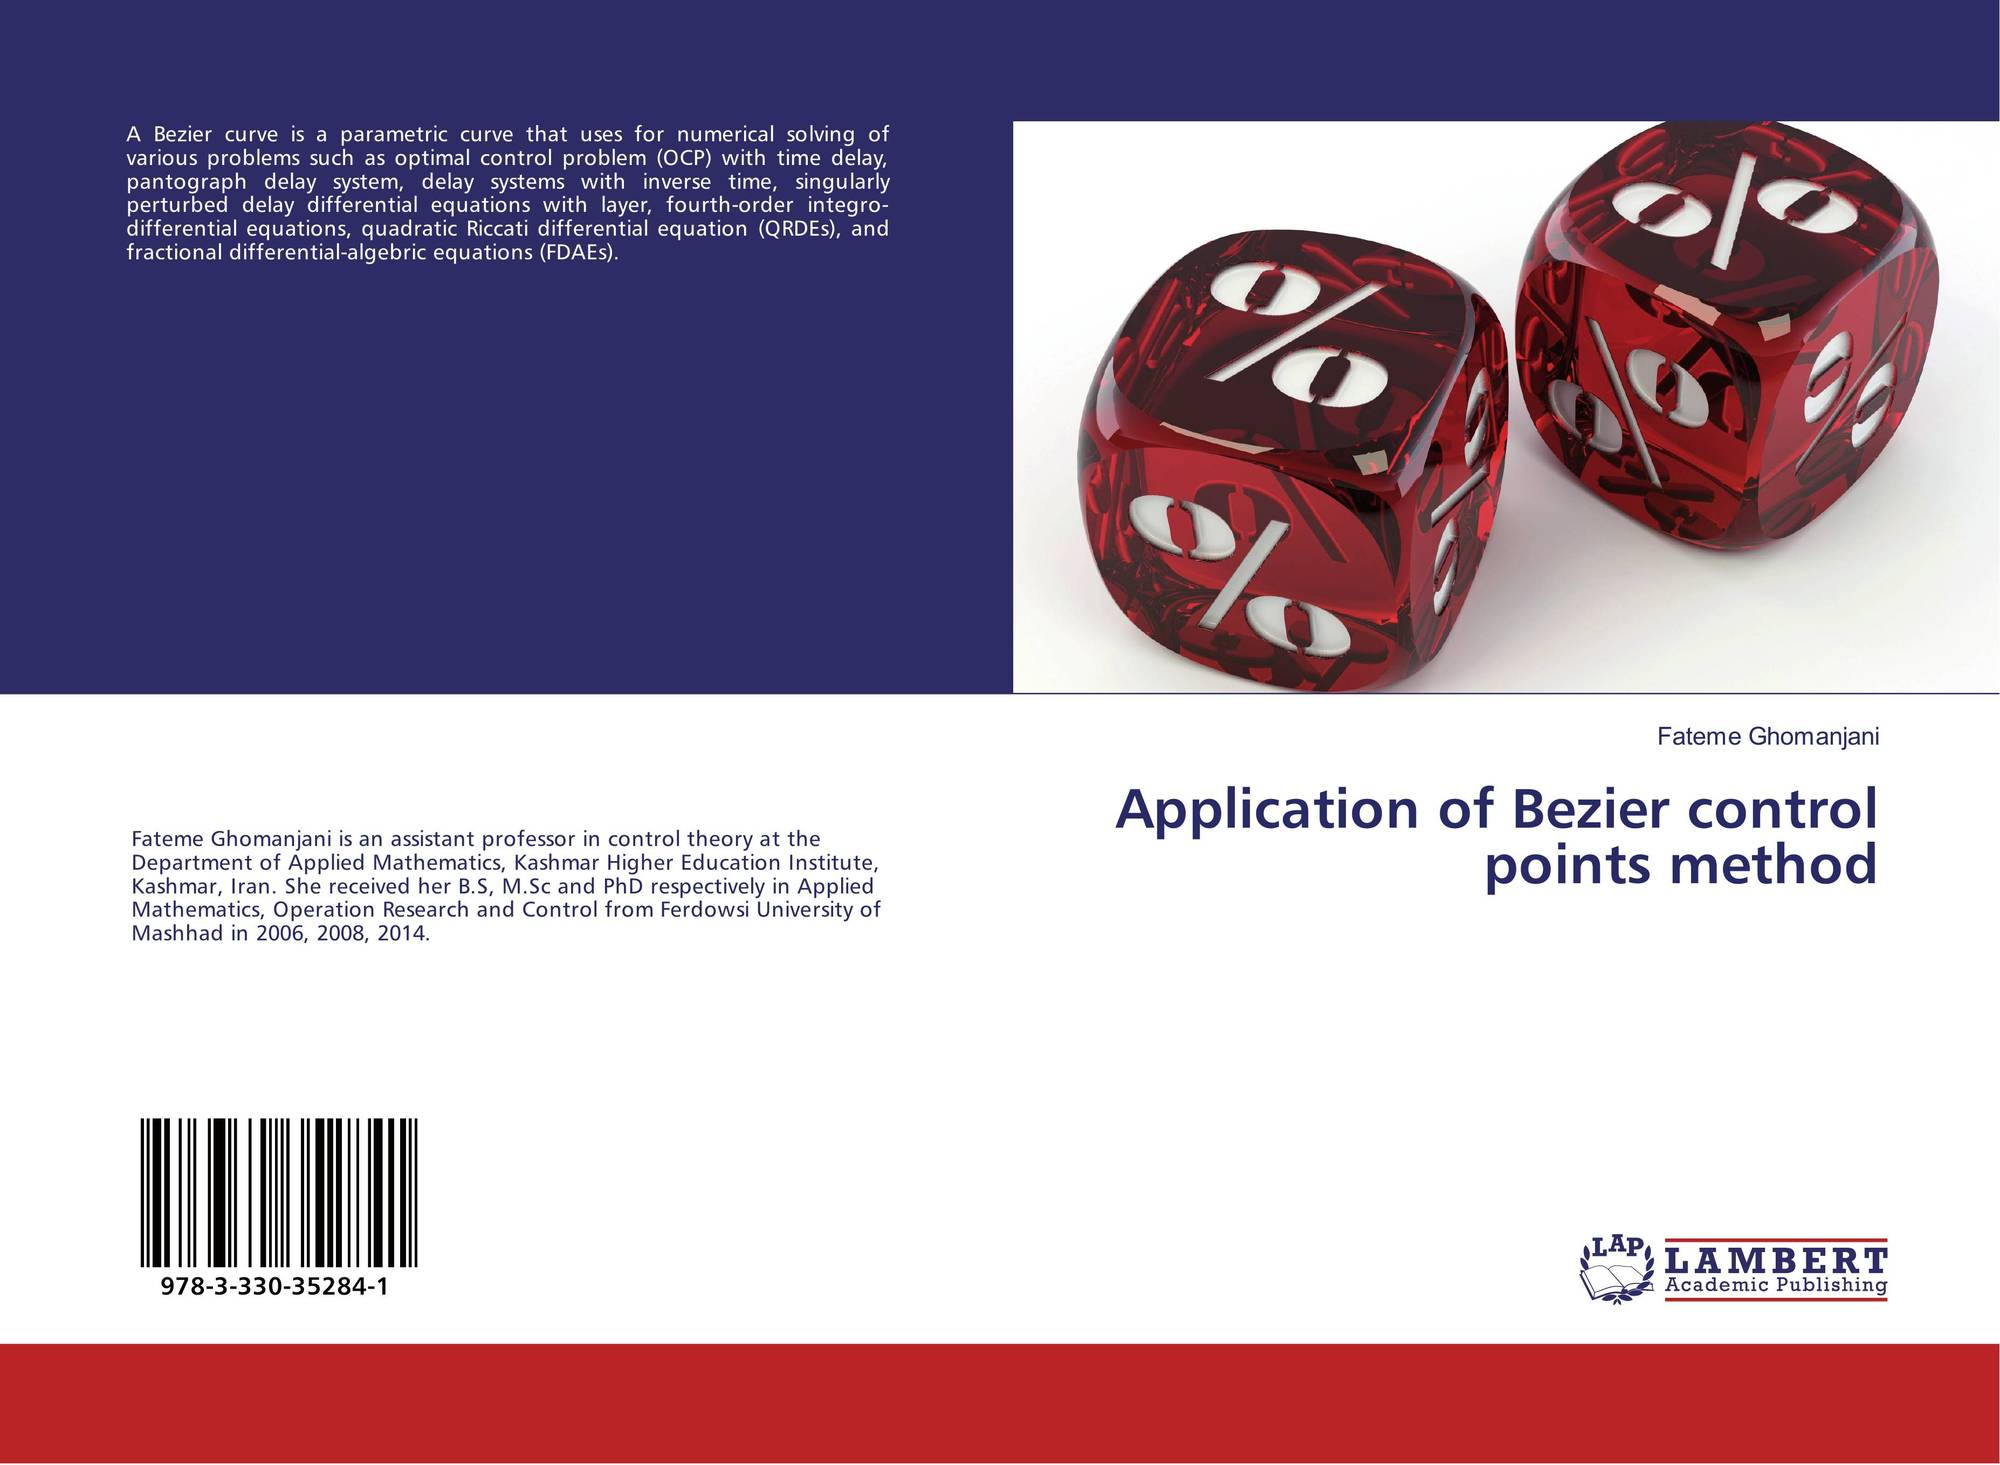 Application of Bezier control points method, 978-3-330-35284